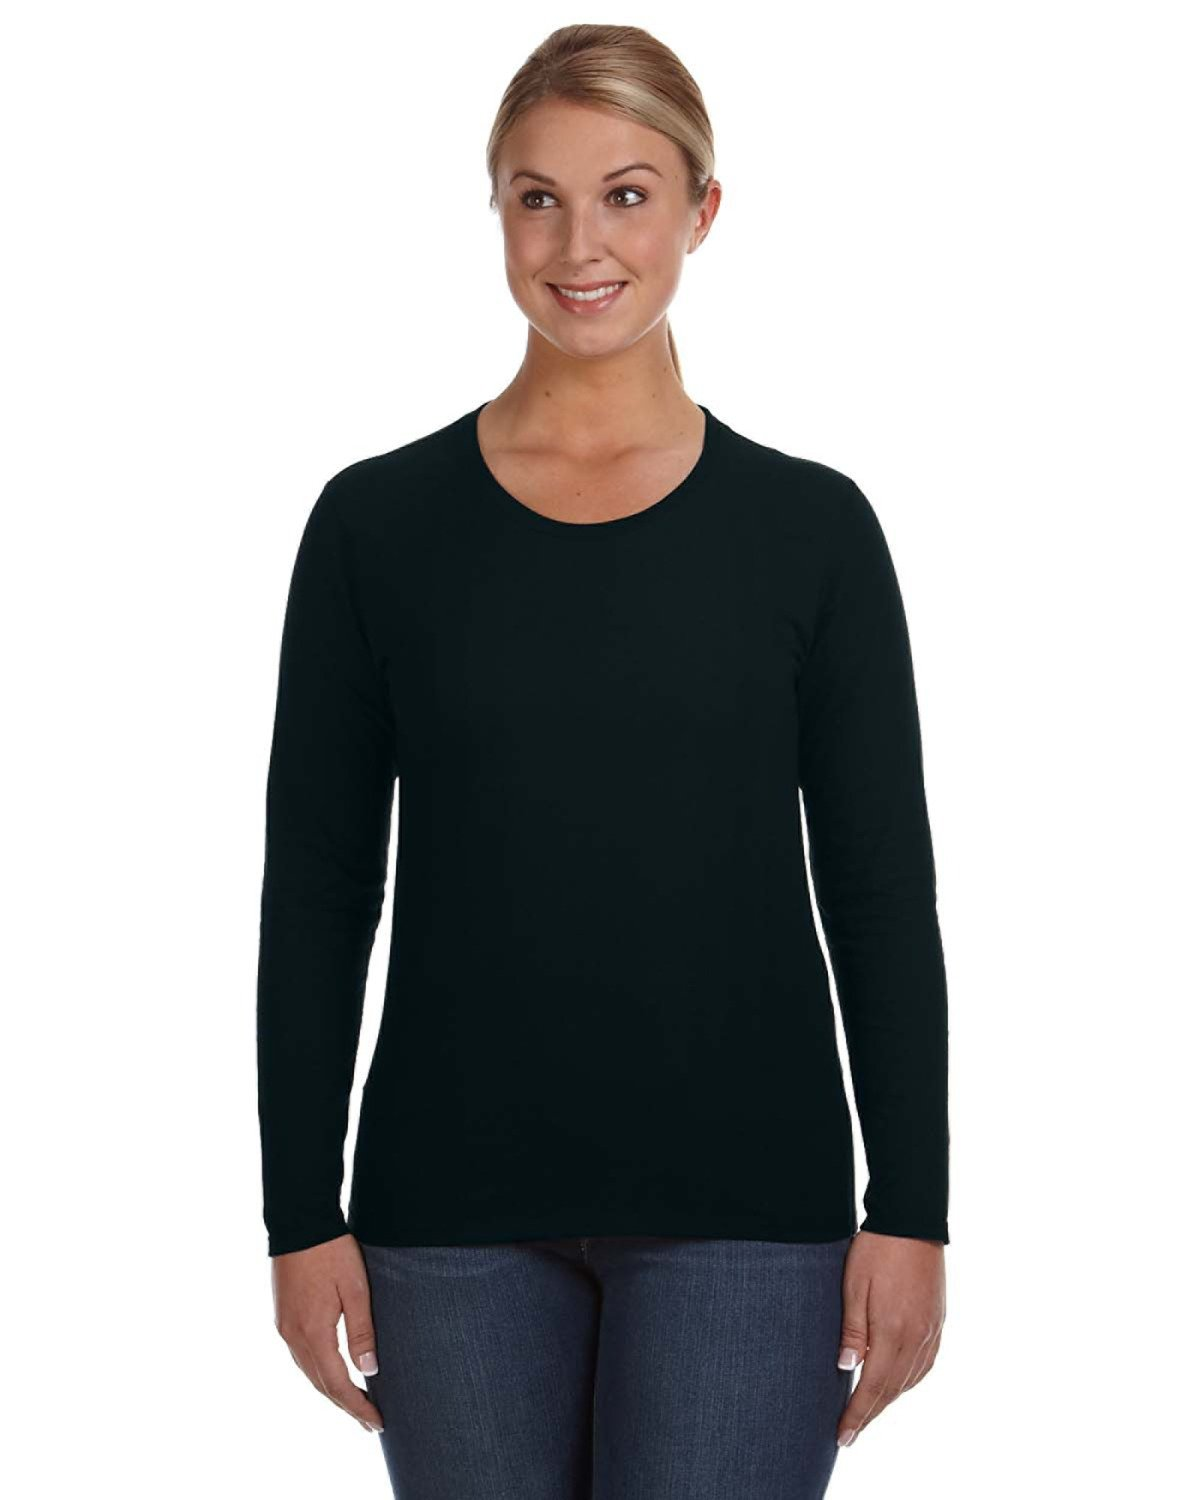 Anvil - 884L - Ladies' Lightweight Long-Sleeve T-Shirt